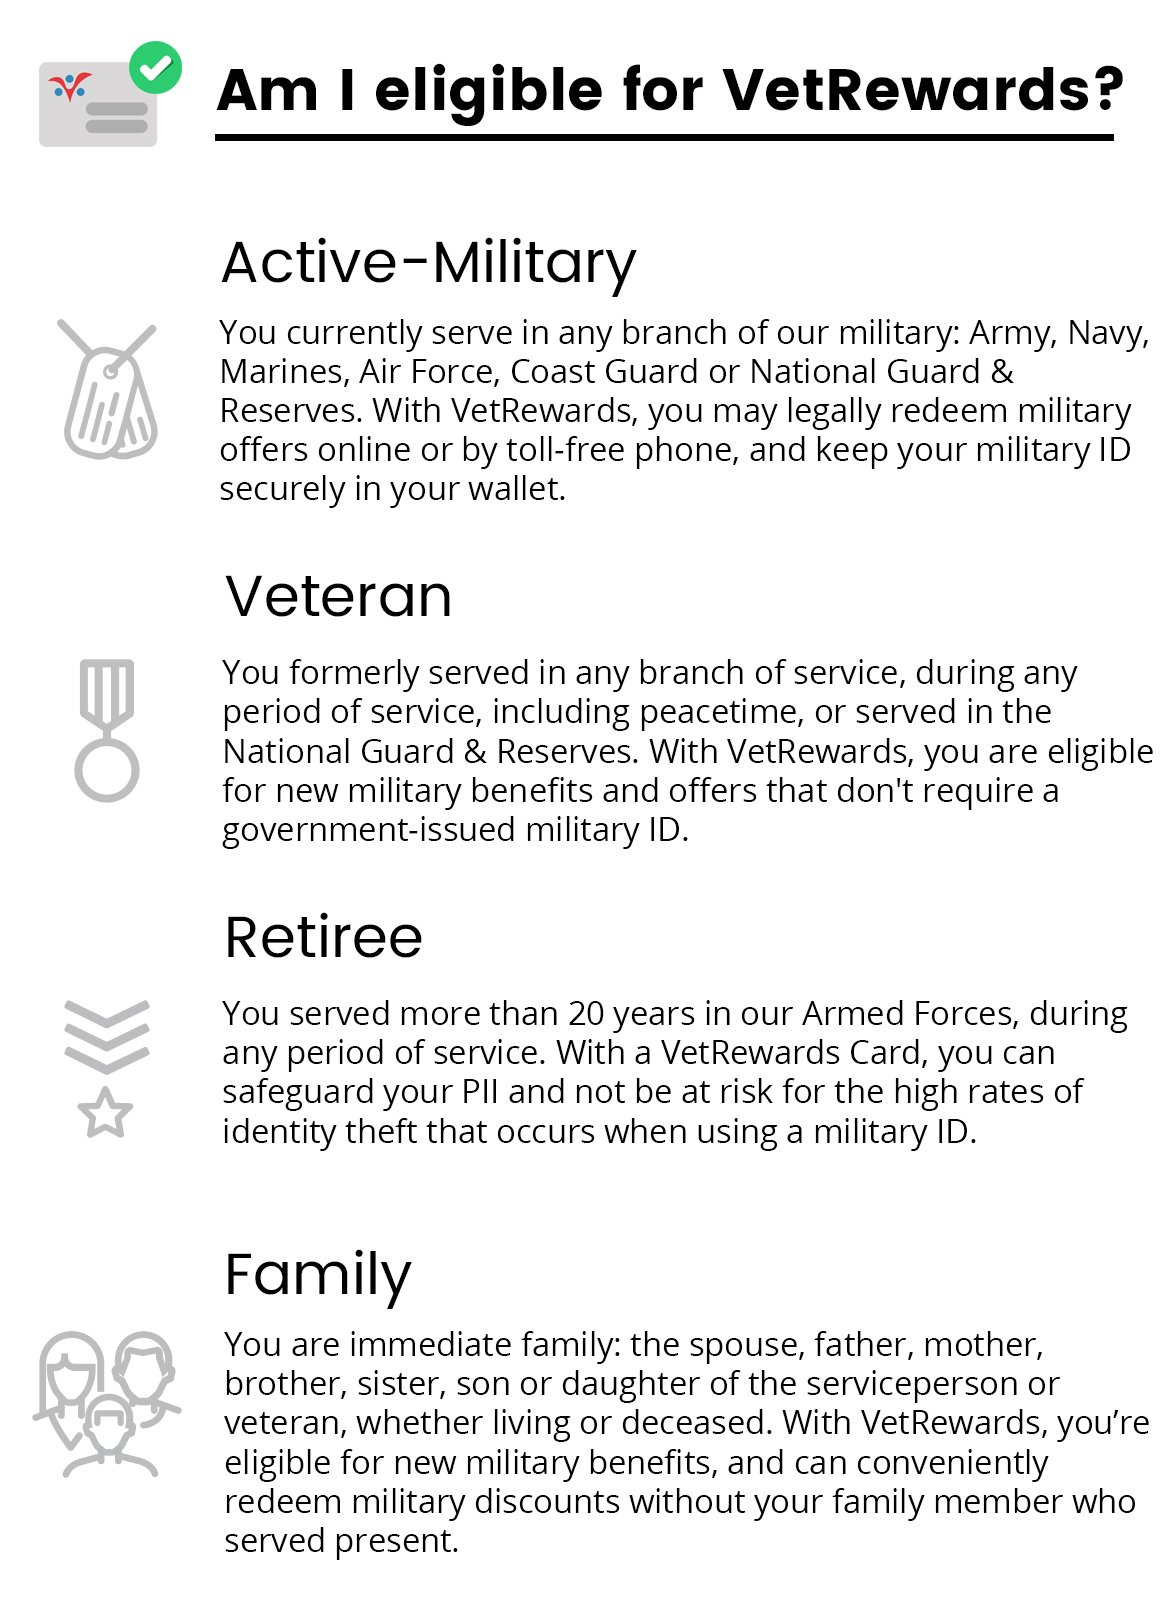 Active-military, veterans, retirees and their family members are all eligible for VetRewards!